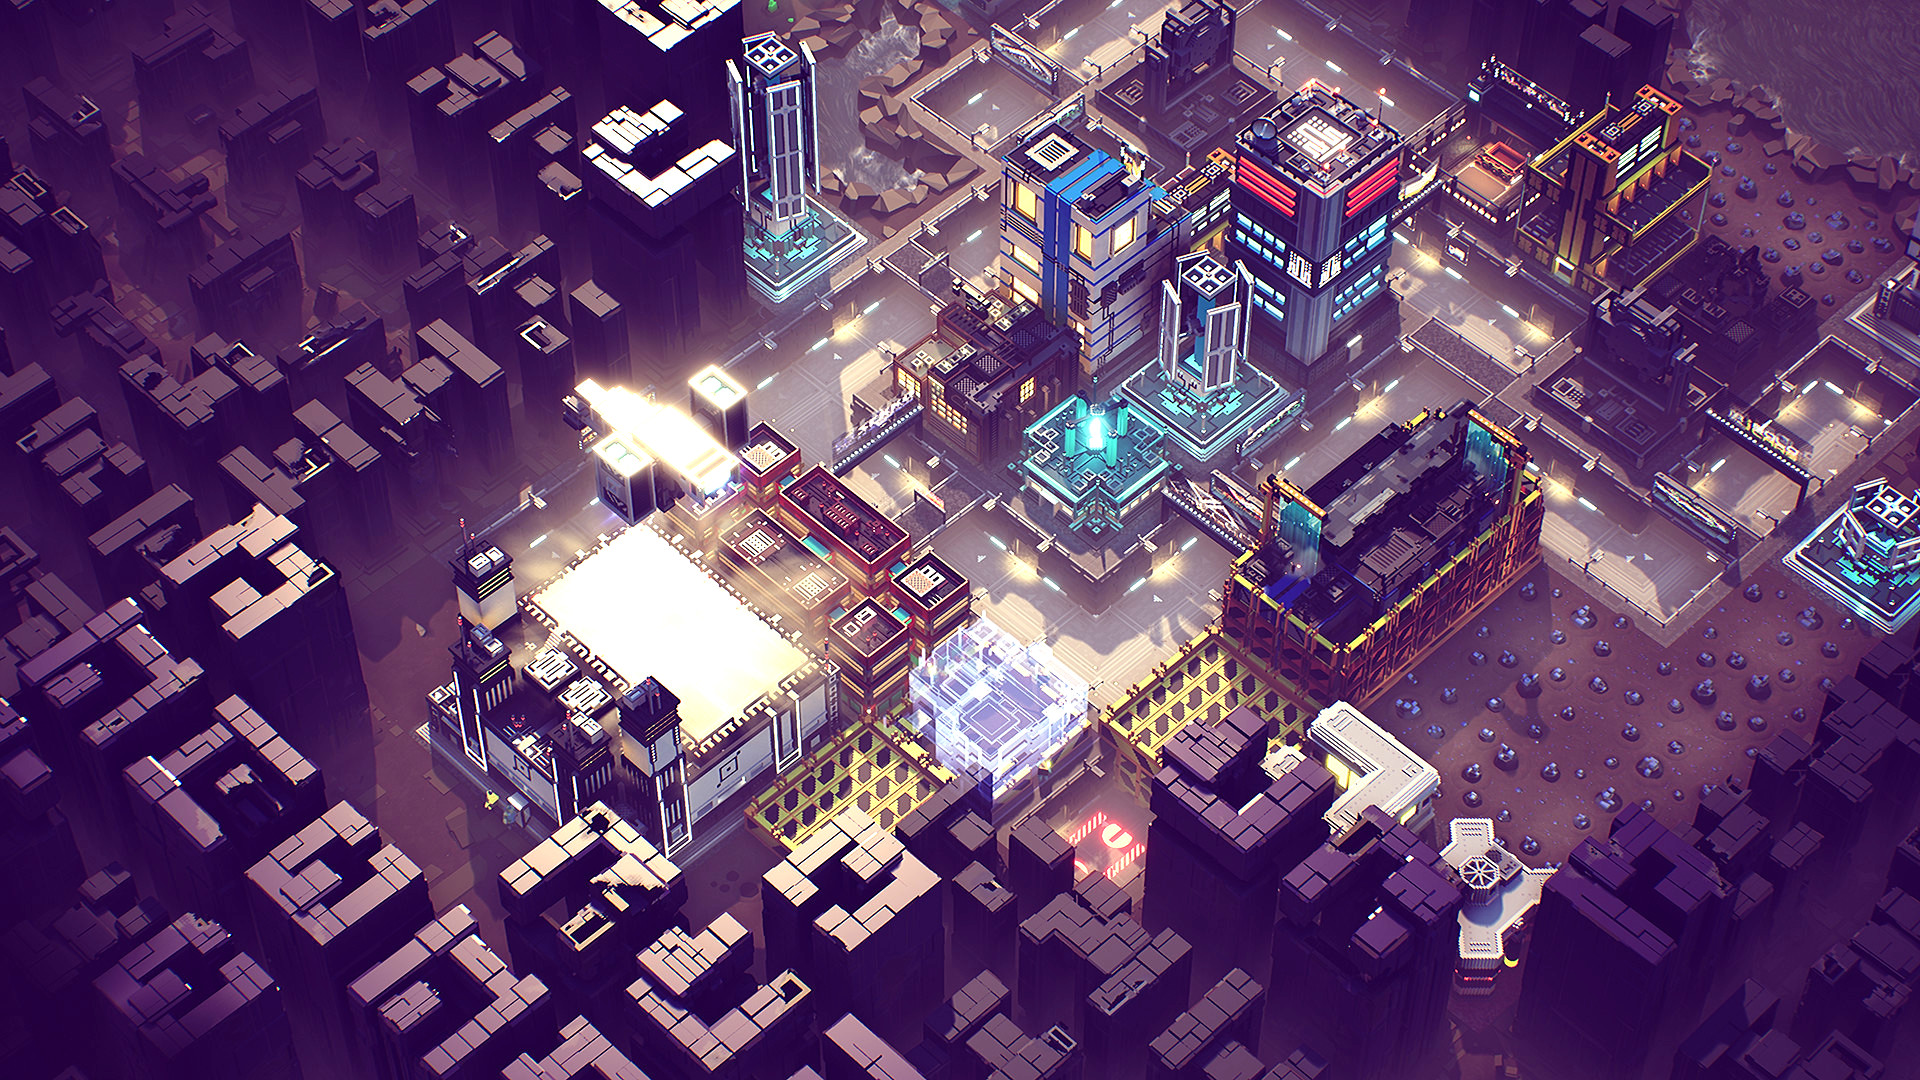 Industries of Titan is a city-building game on the edge of oblivion